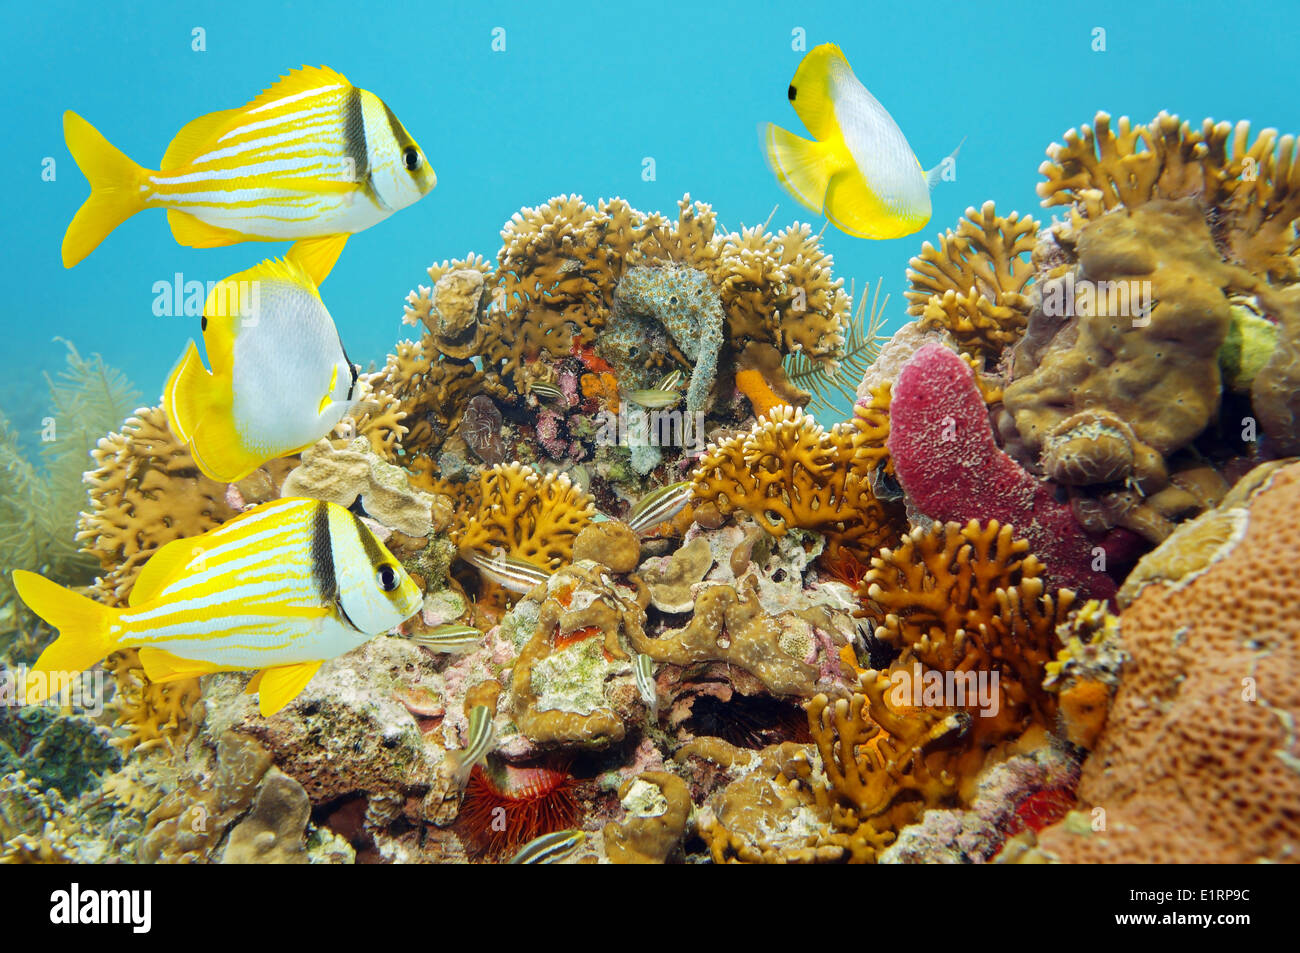 Coral reef scène de poissons tropicaux Photo Stock